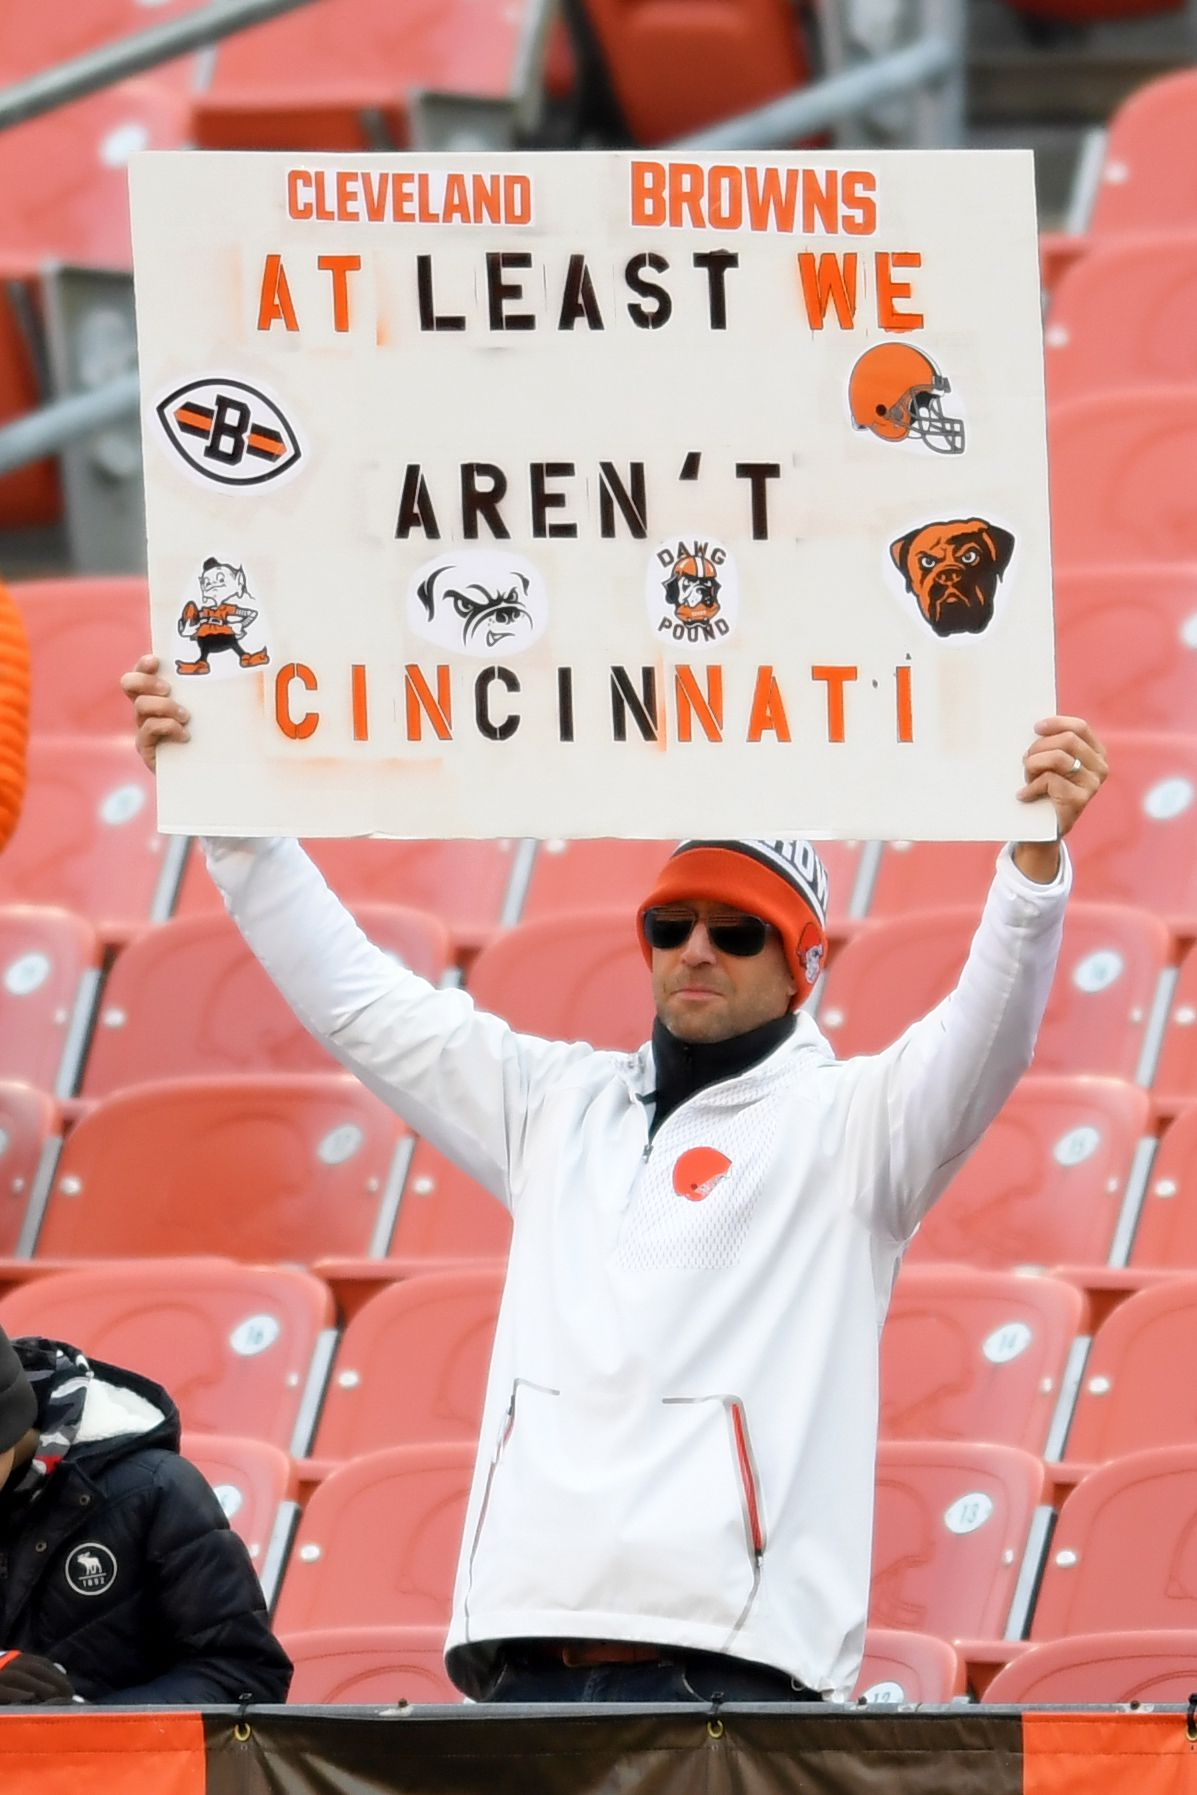 Browns fan holding up a sign